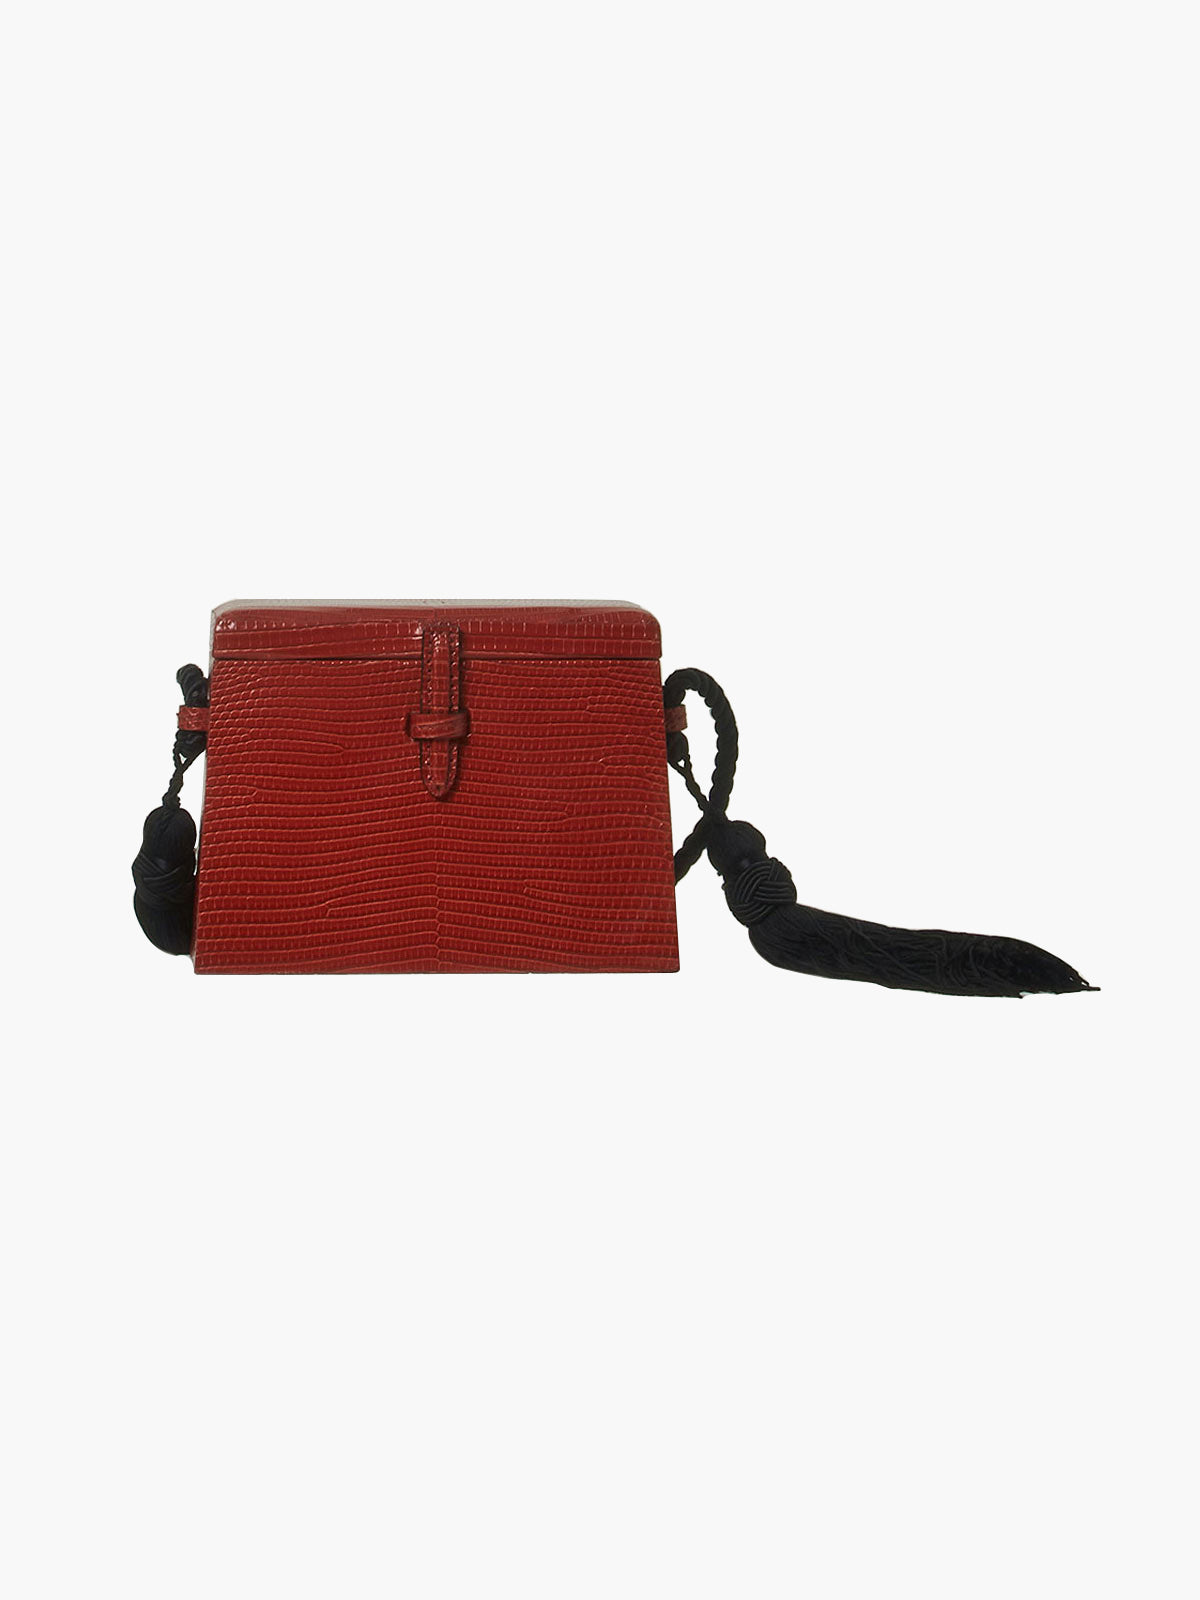 Mini Square Trunk With Tassels | Brick Red Mini Square Trunk With Tassels | Brick Red